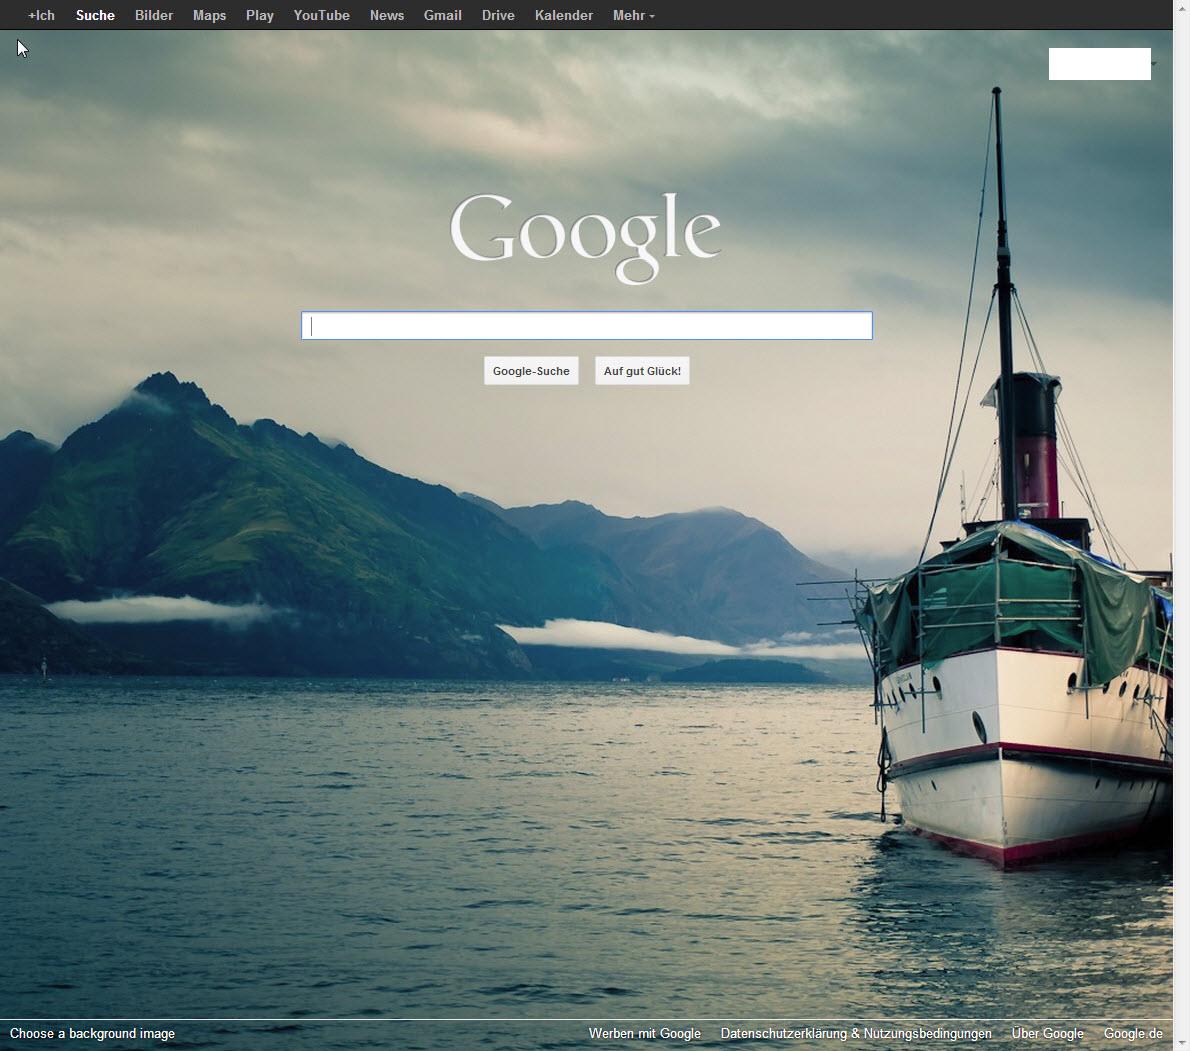 Google homepage themes gallery - Get Your Google Homepage Background Image Back Ghacks Tech News